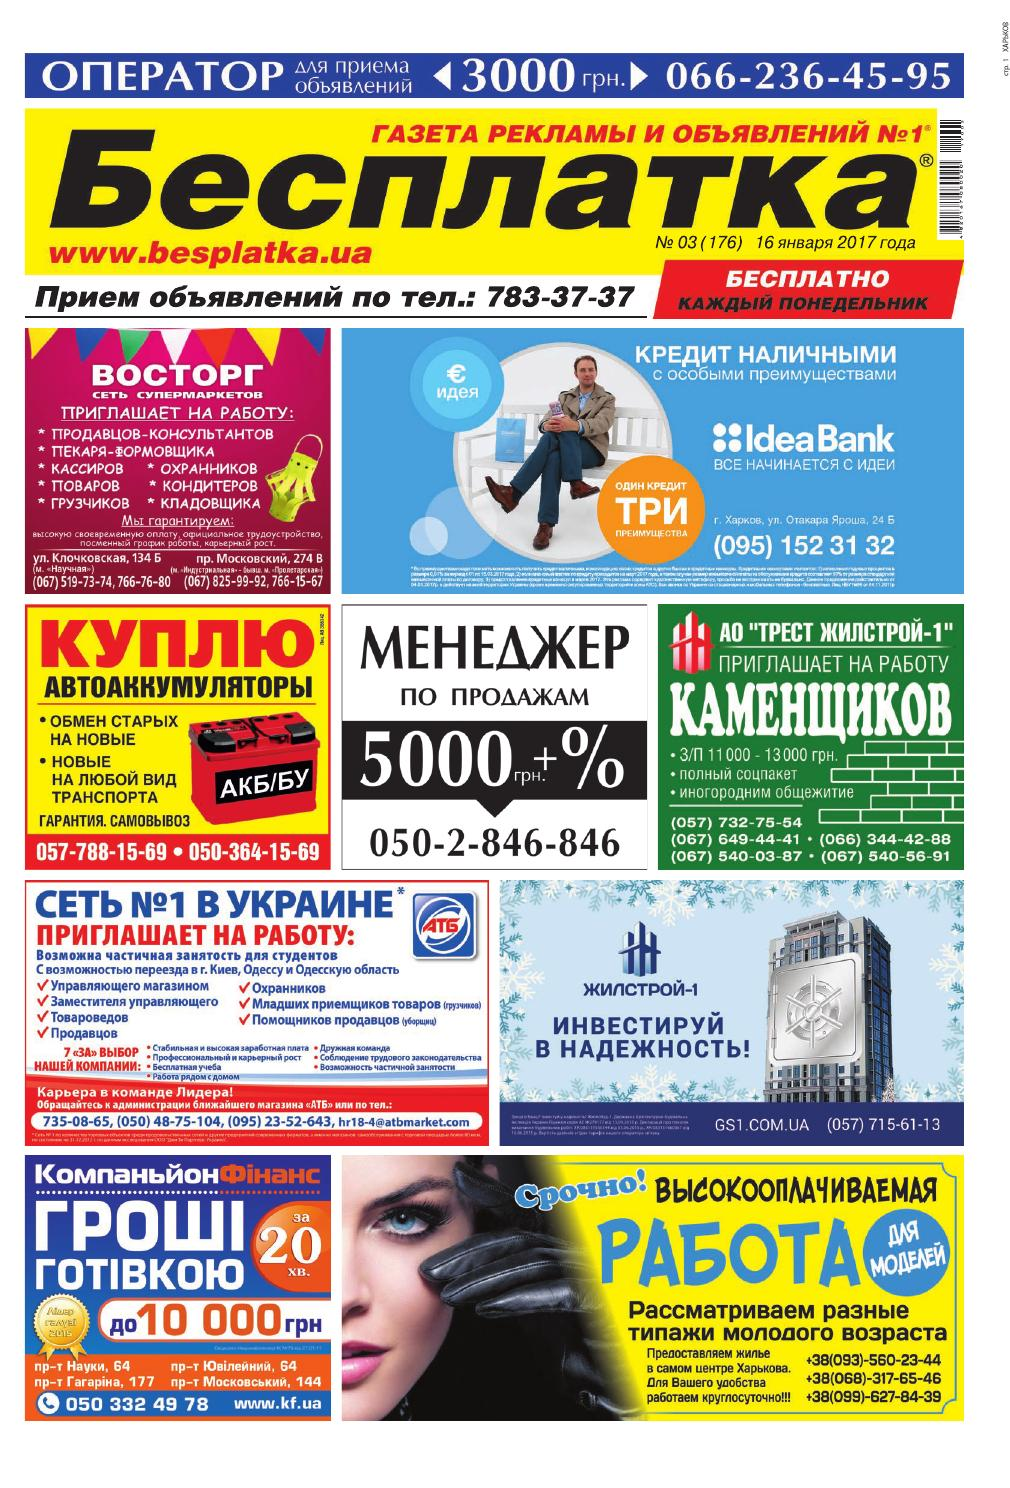 Besplatka  3 Харьков by besplatka ukraine - issuu 460a48fee8d